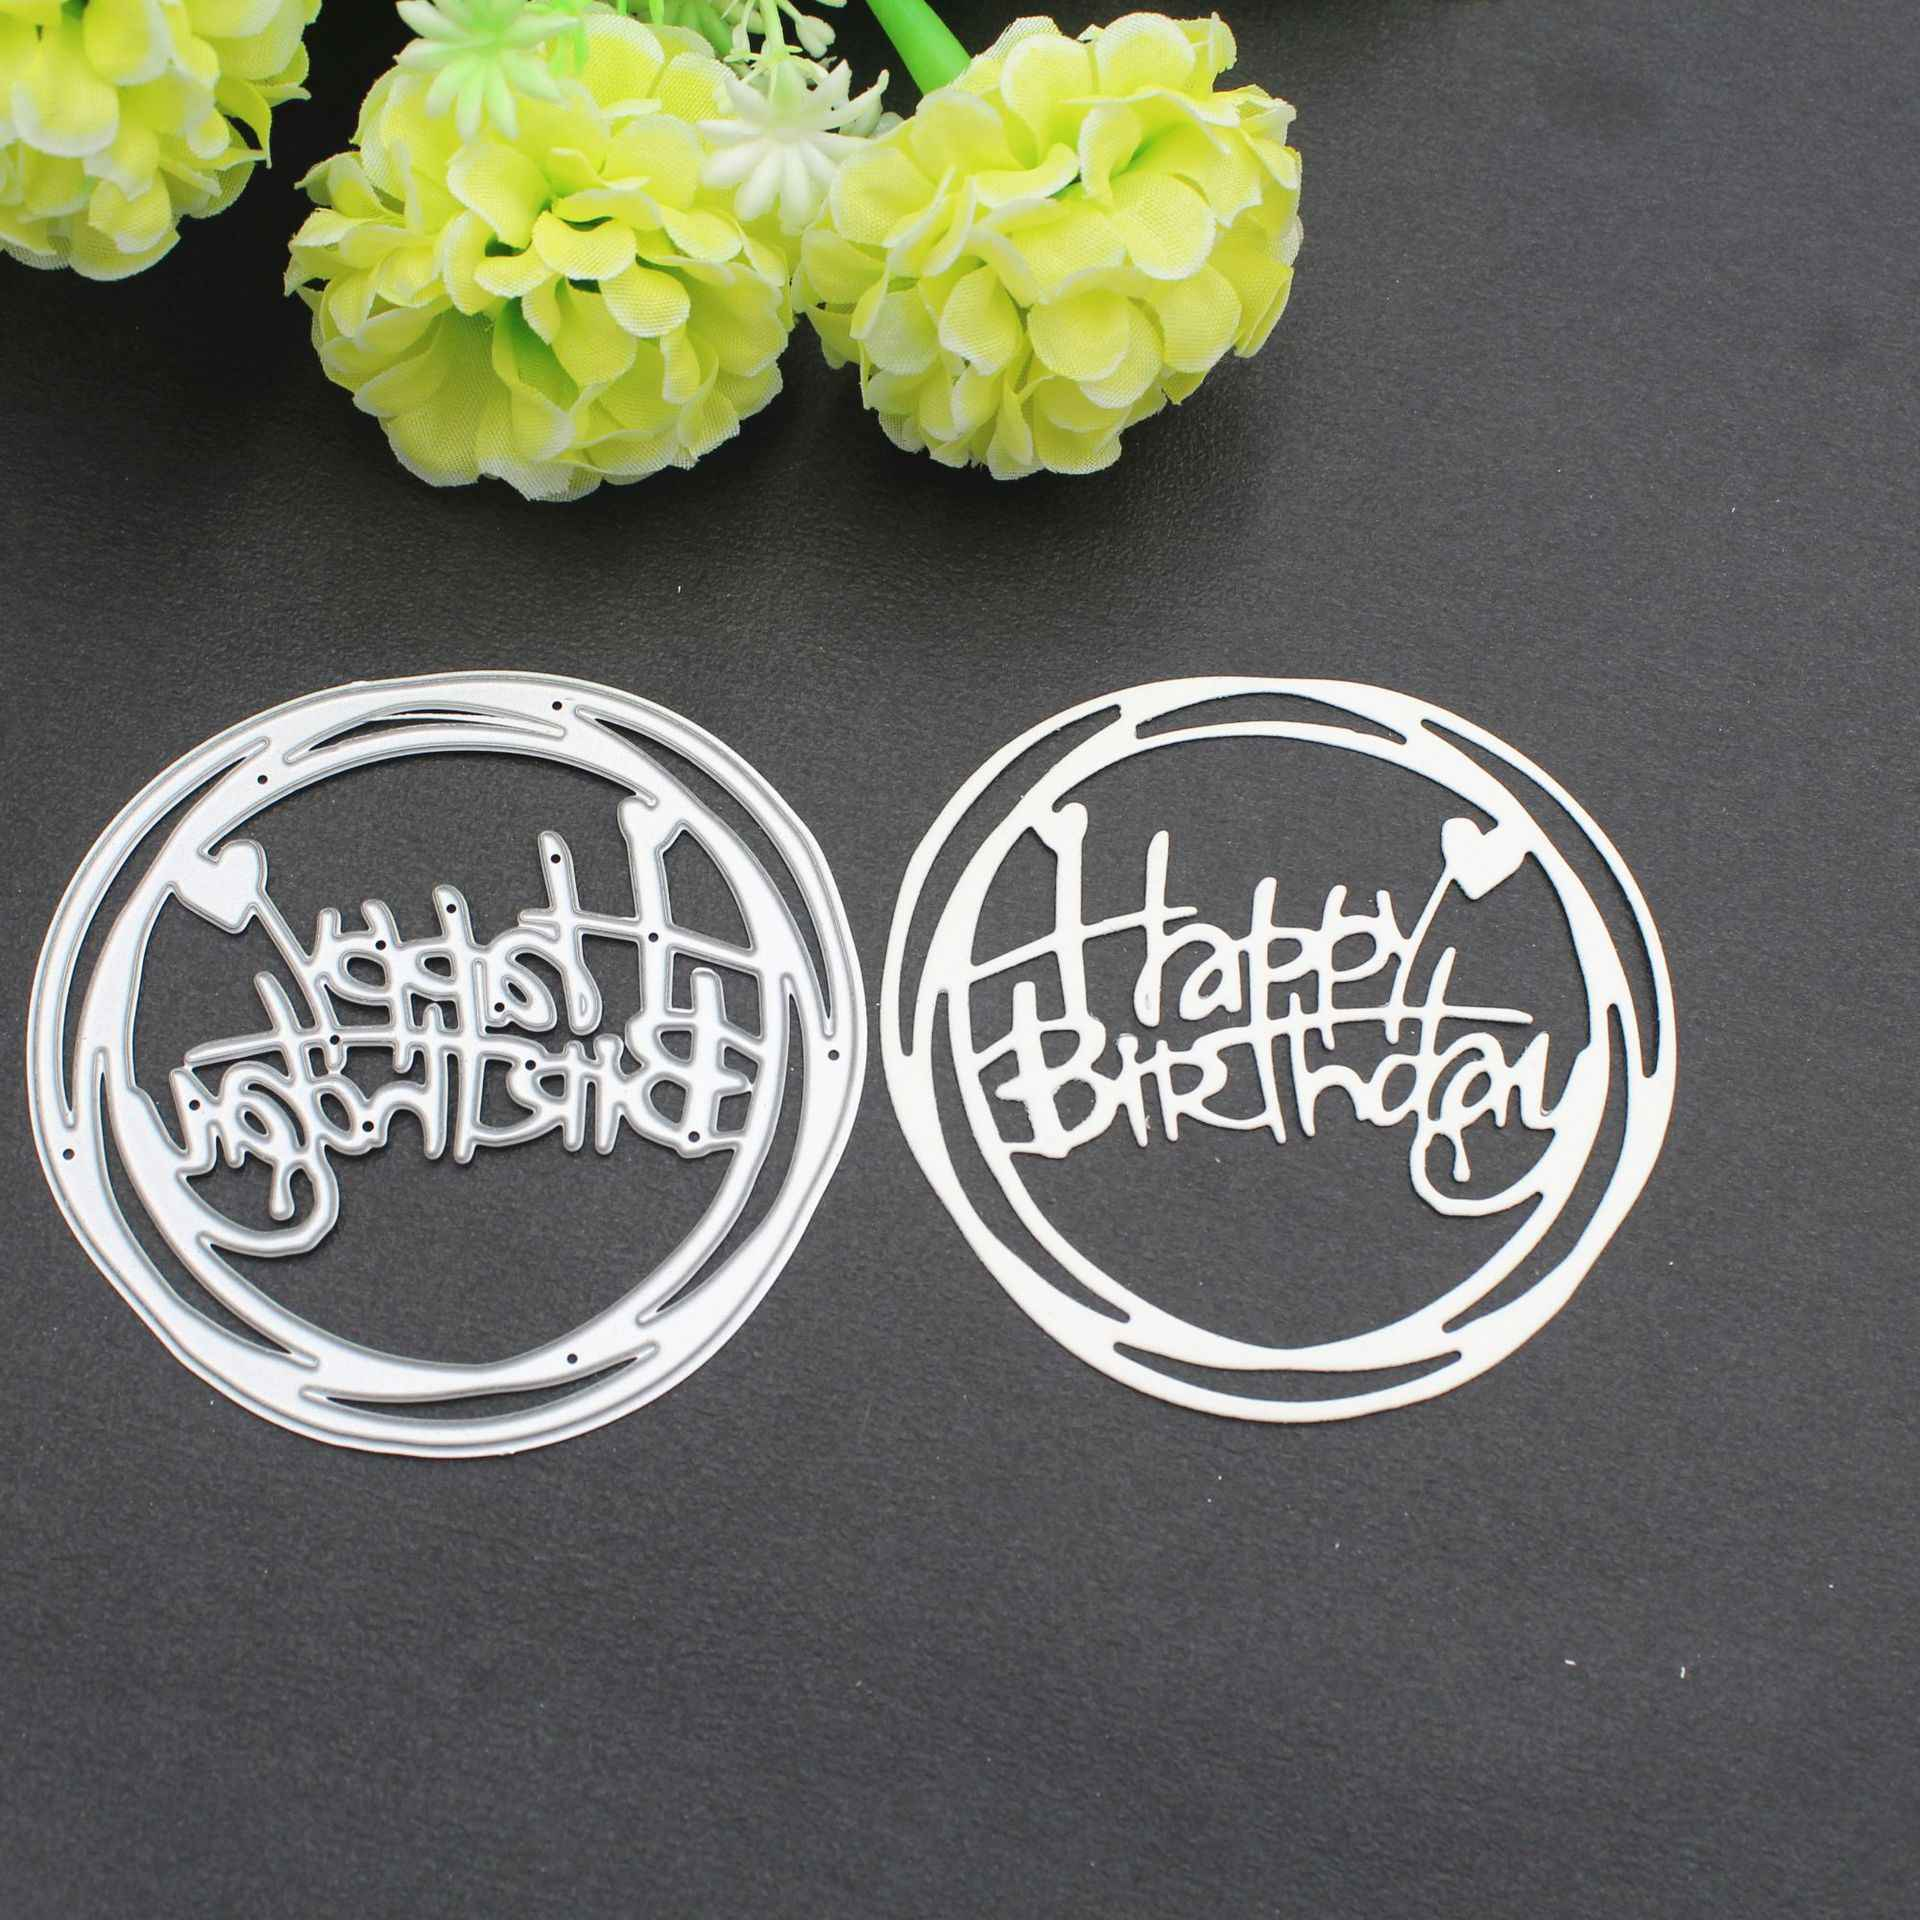 Happy Birthday Words Metal Cutting Dies Stencil For DIY Scrapbooking Photo Album Embossing Paper Cards Crafts Die Cuts